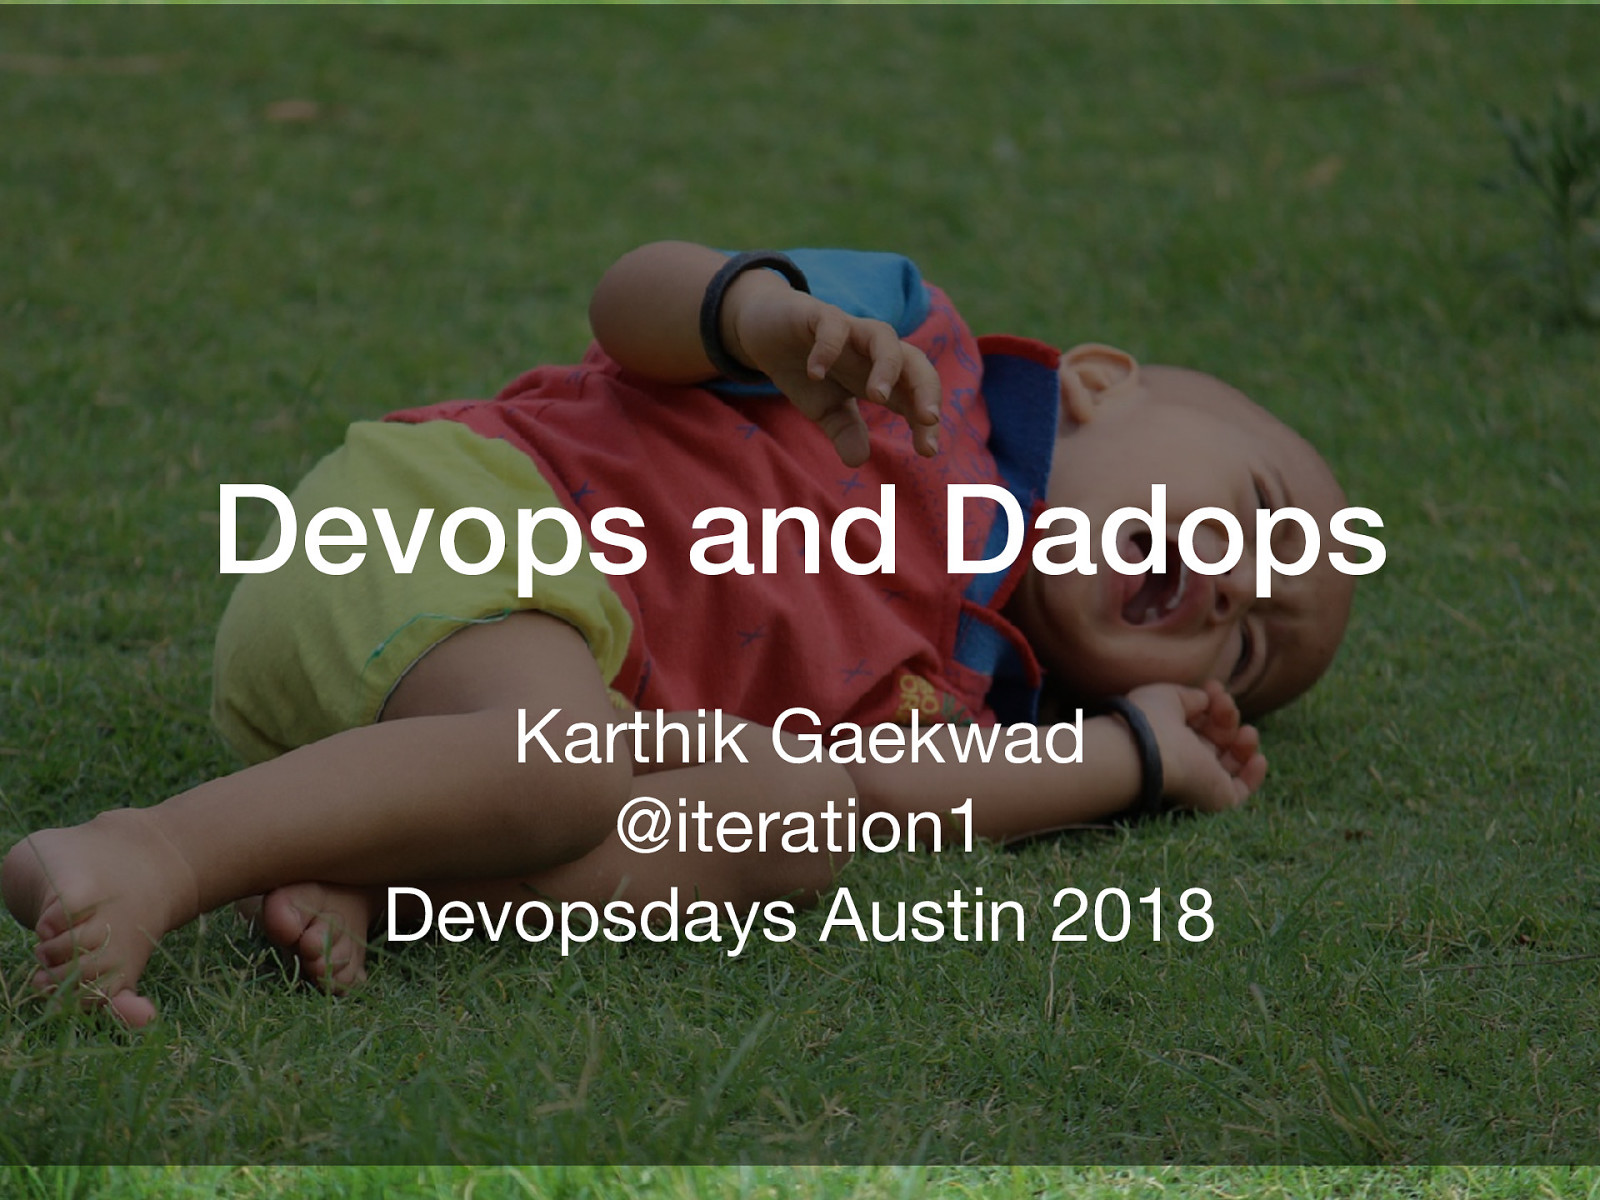 Devops and Dadops